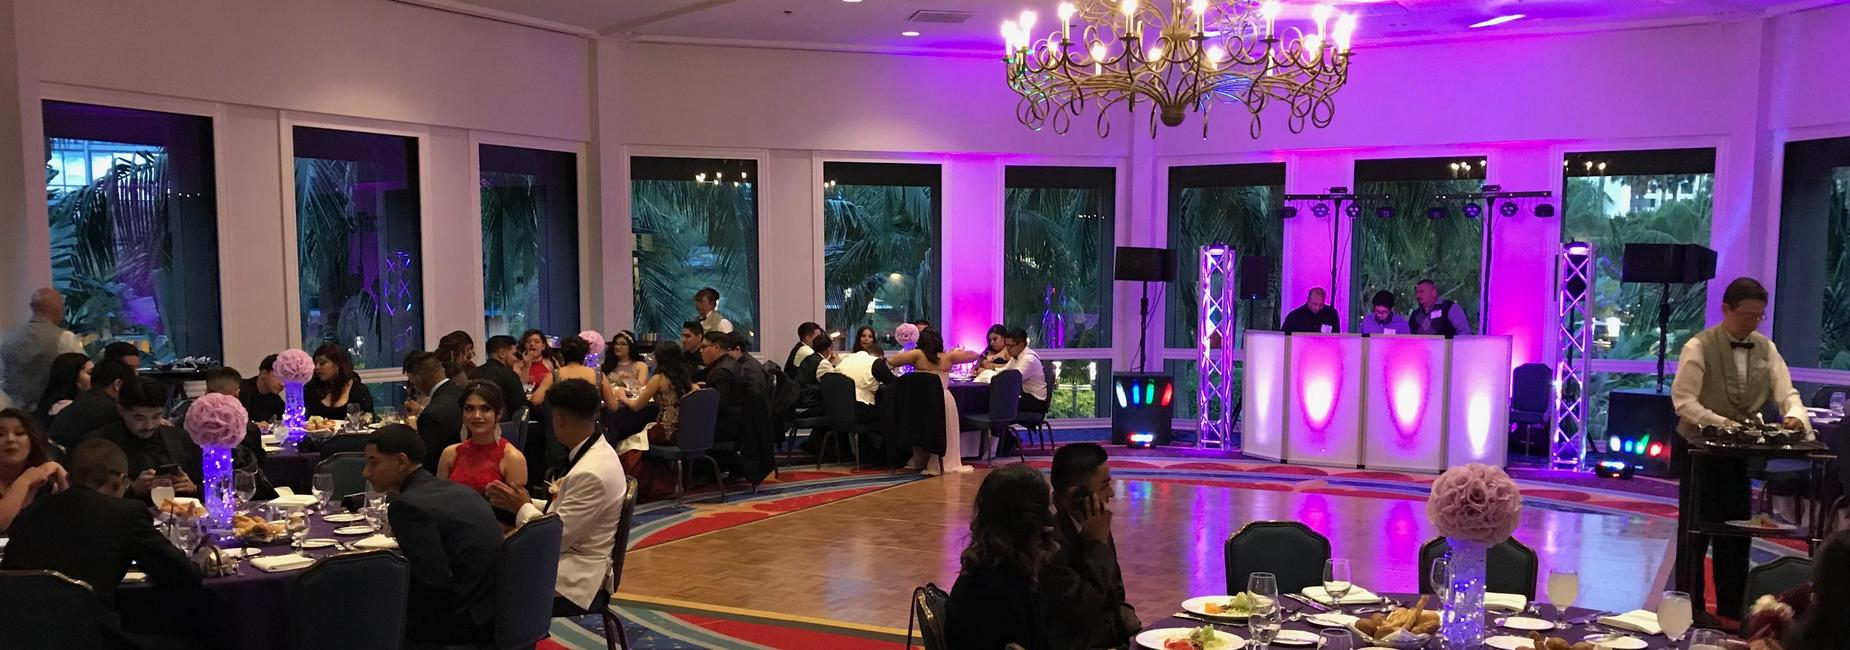 Students dine at Prom 2018